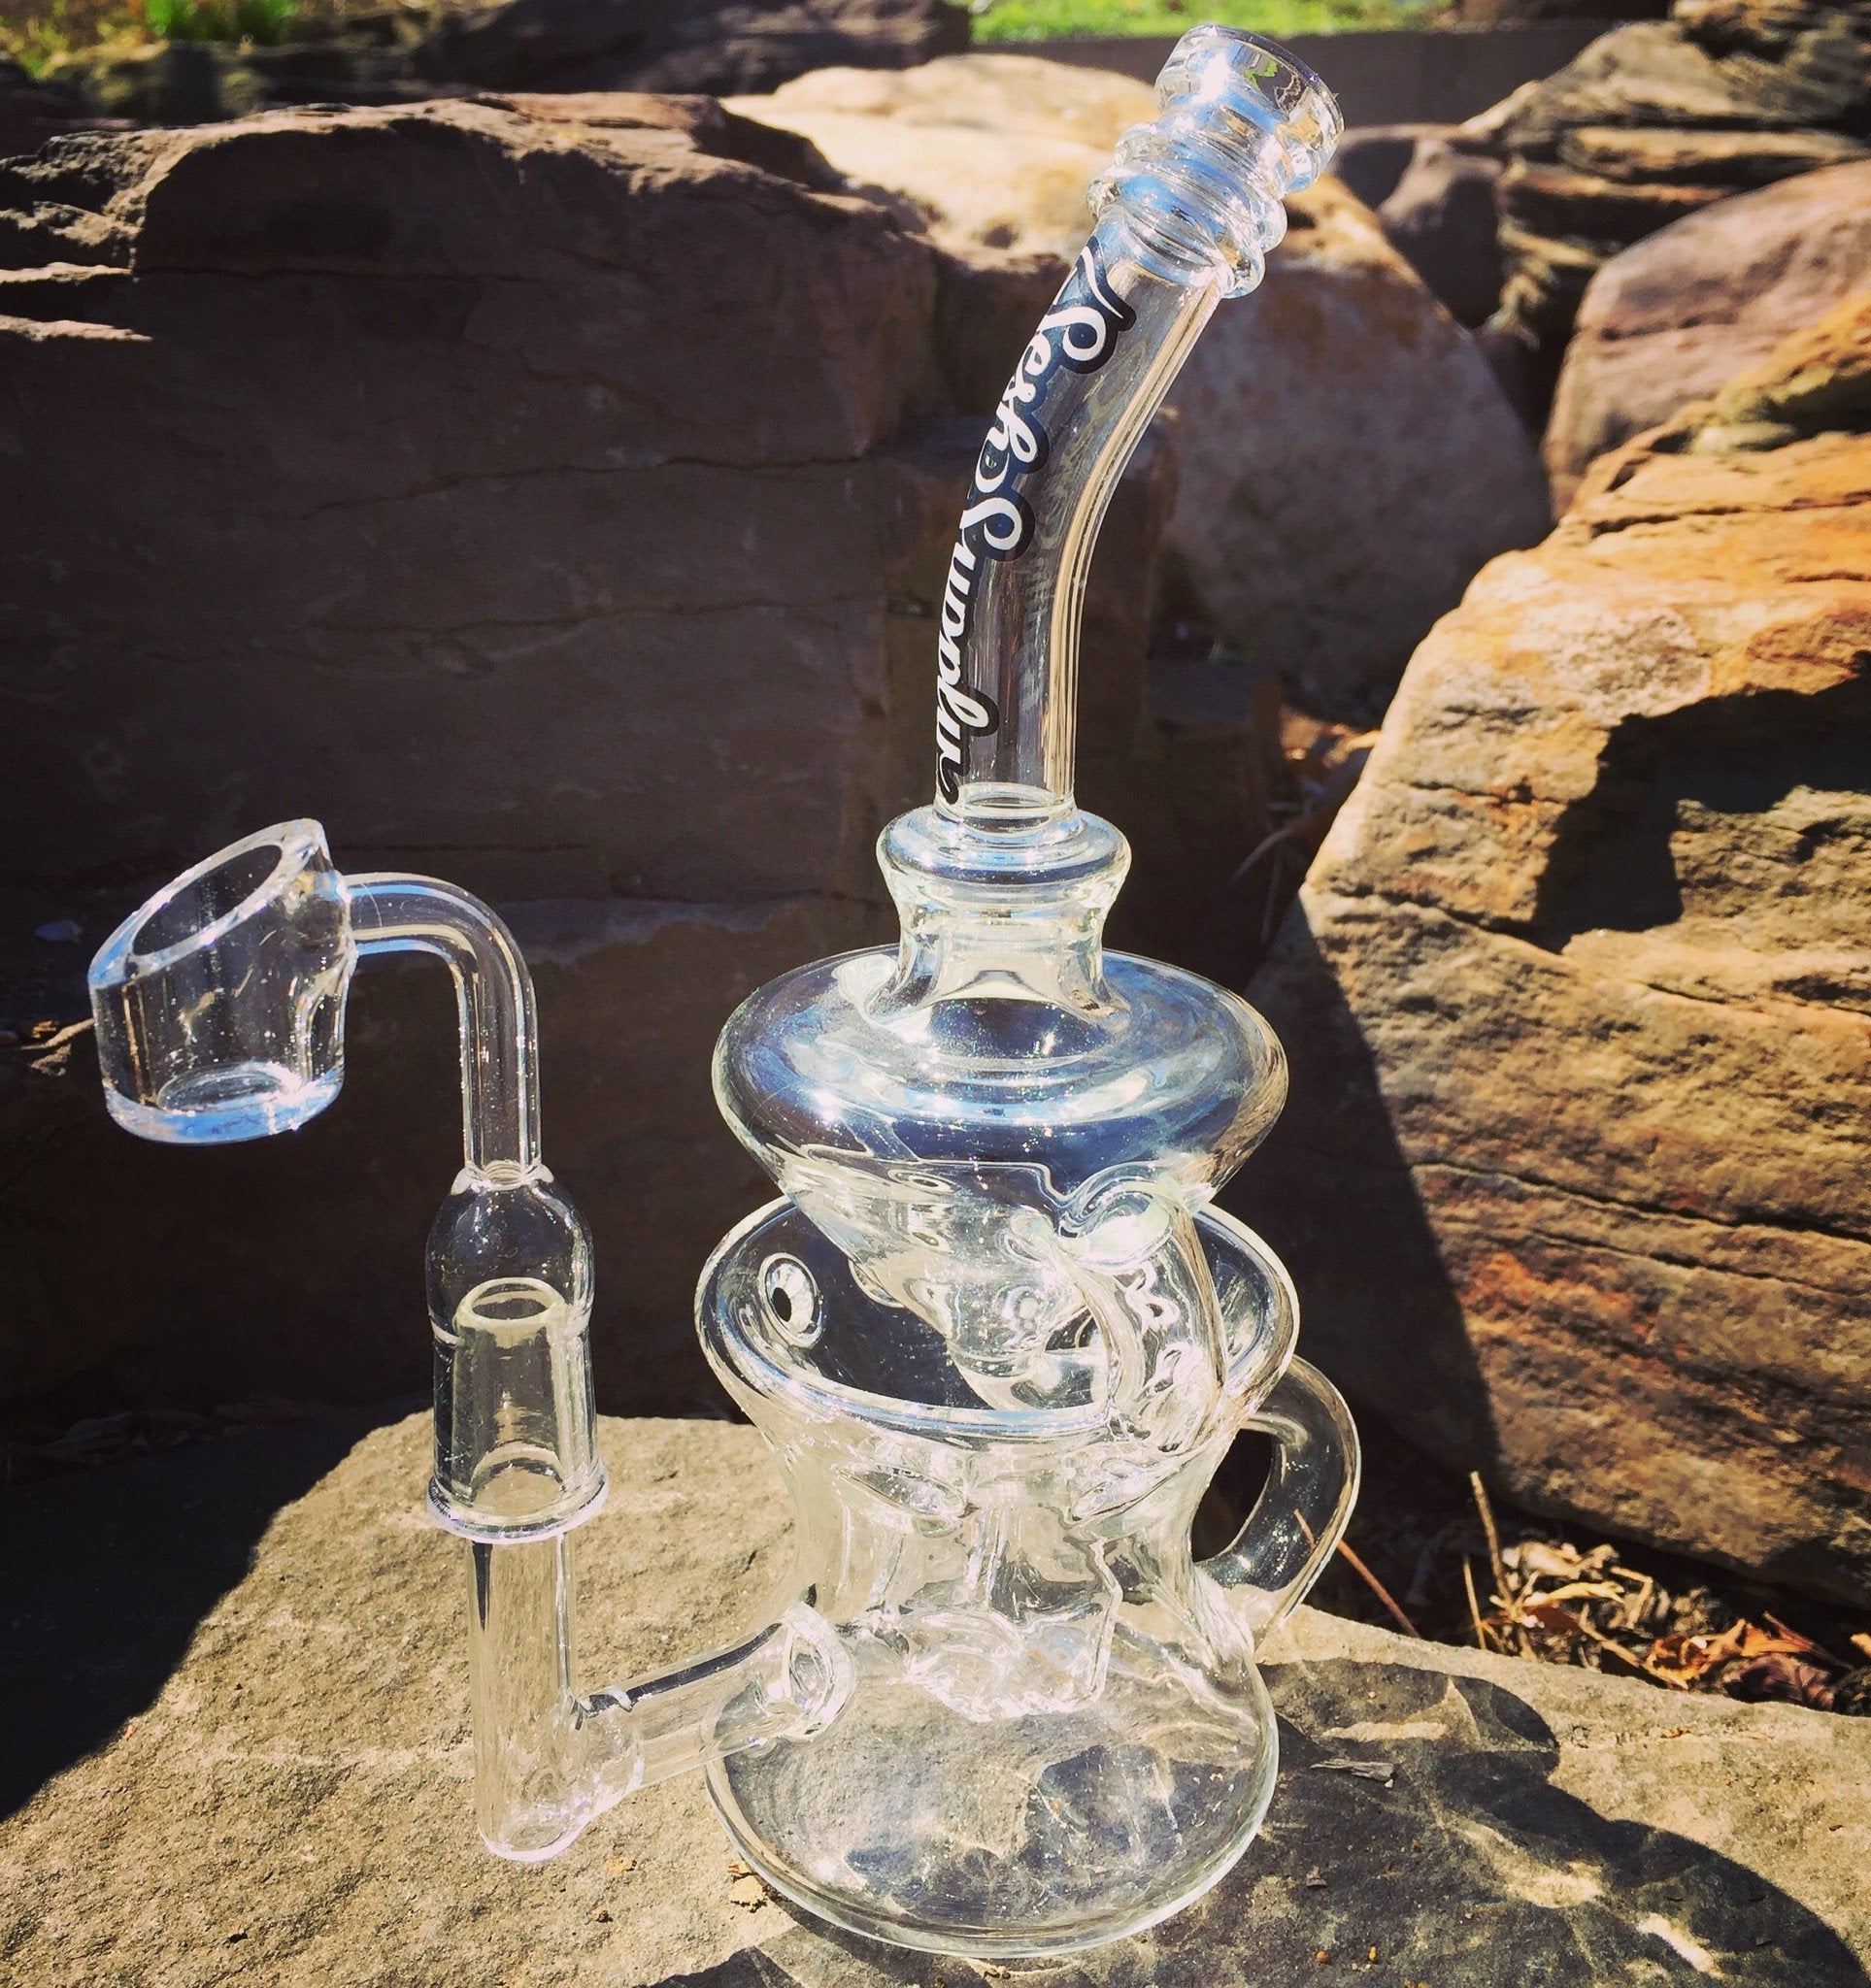 Sesh Suppy - Orion Cube Perc Swiss Recycler